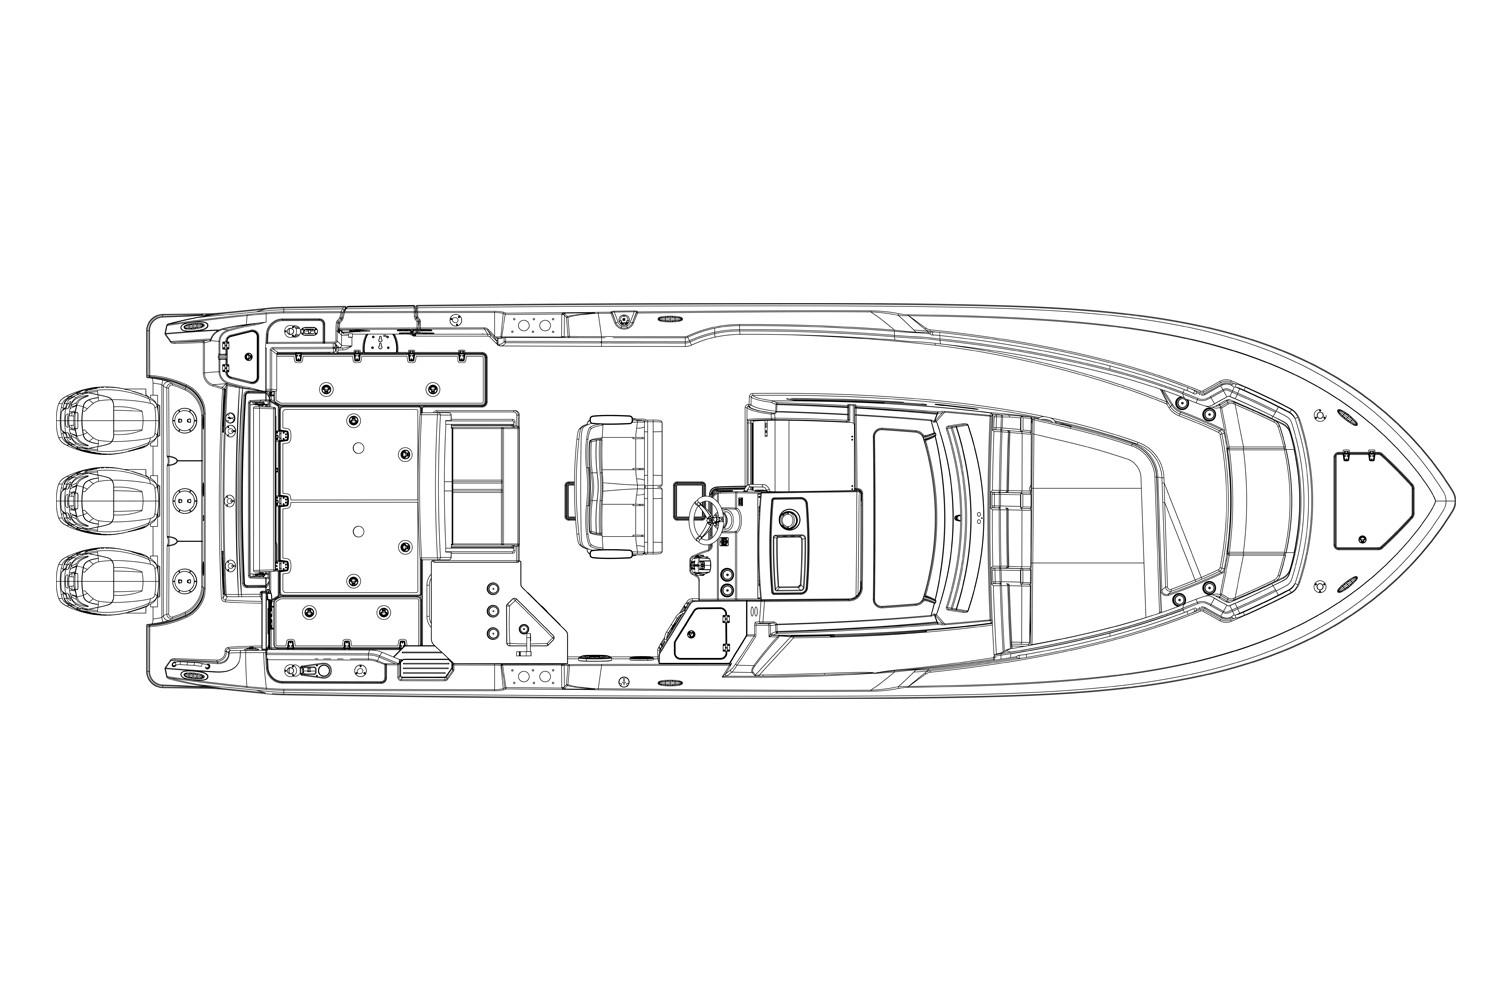 hight resolution of 35 boston whaler manufacturer provided image